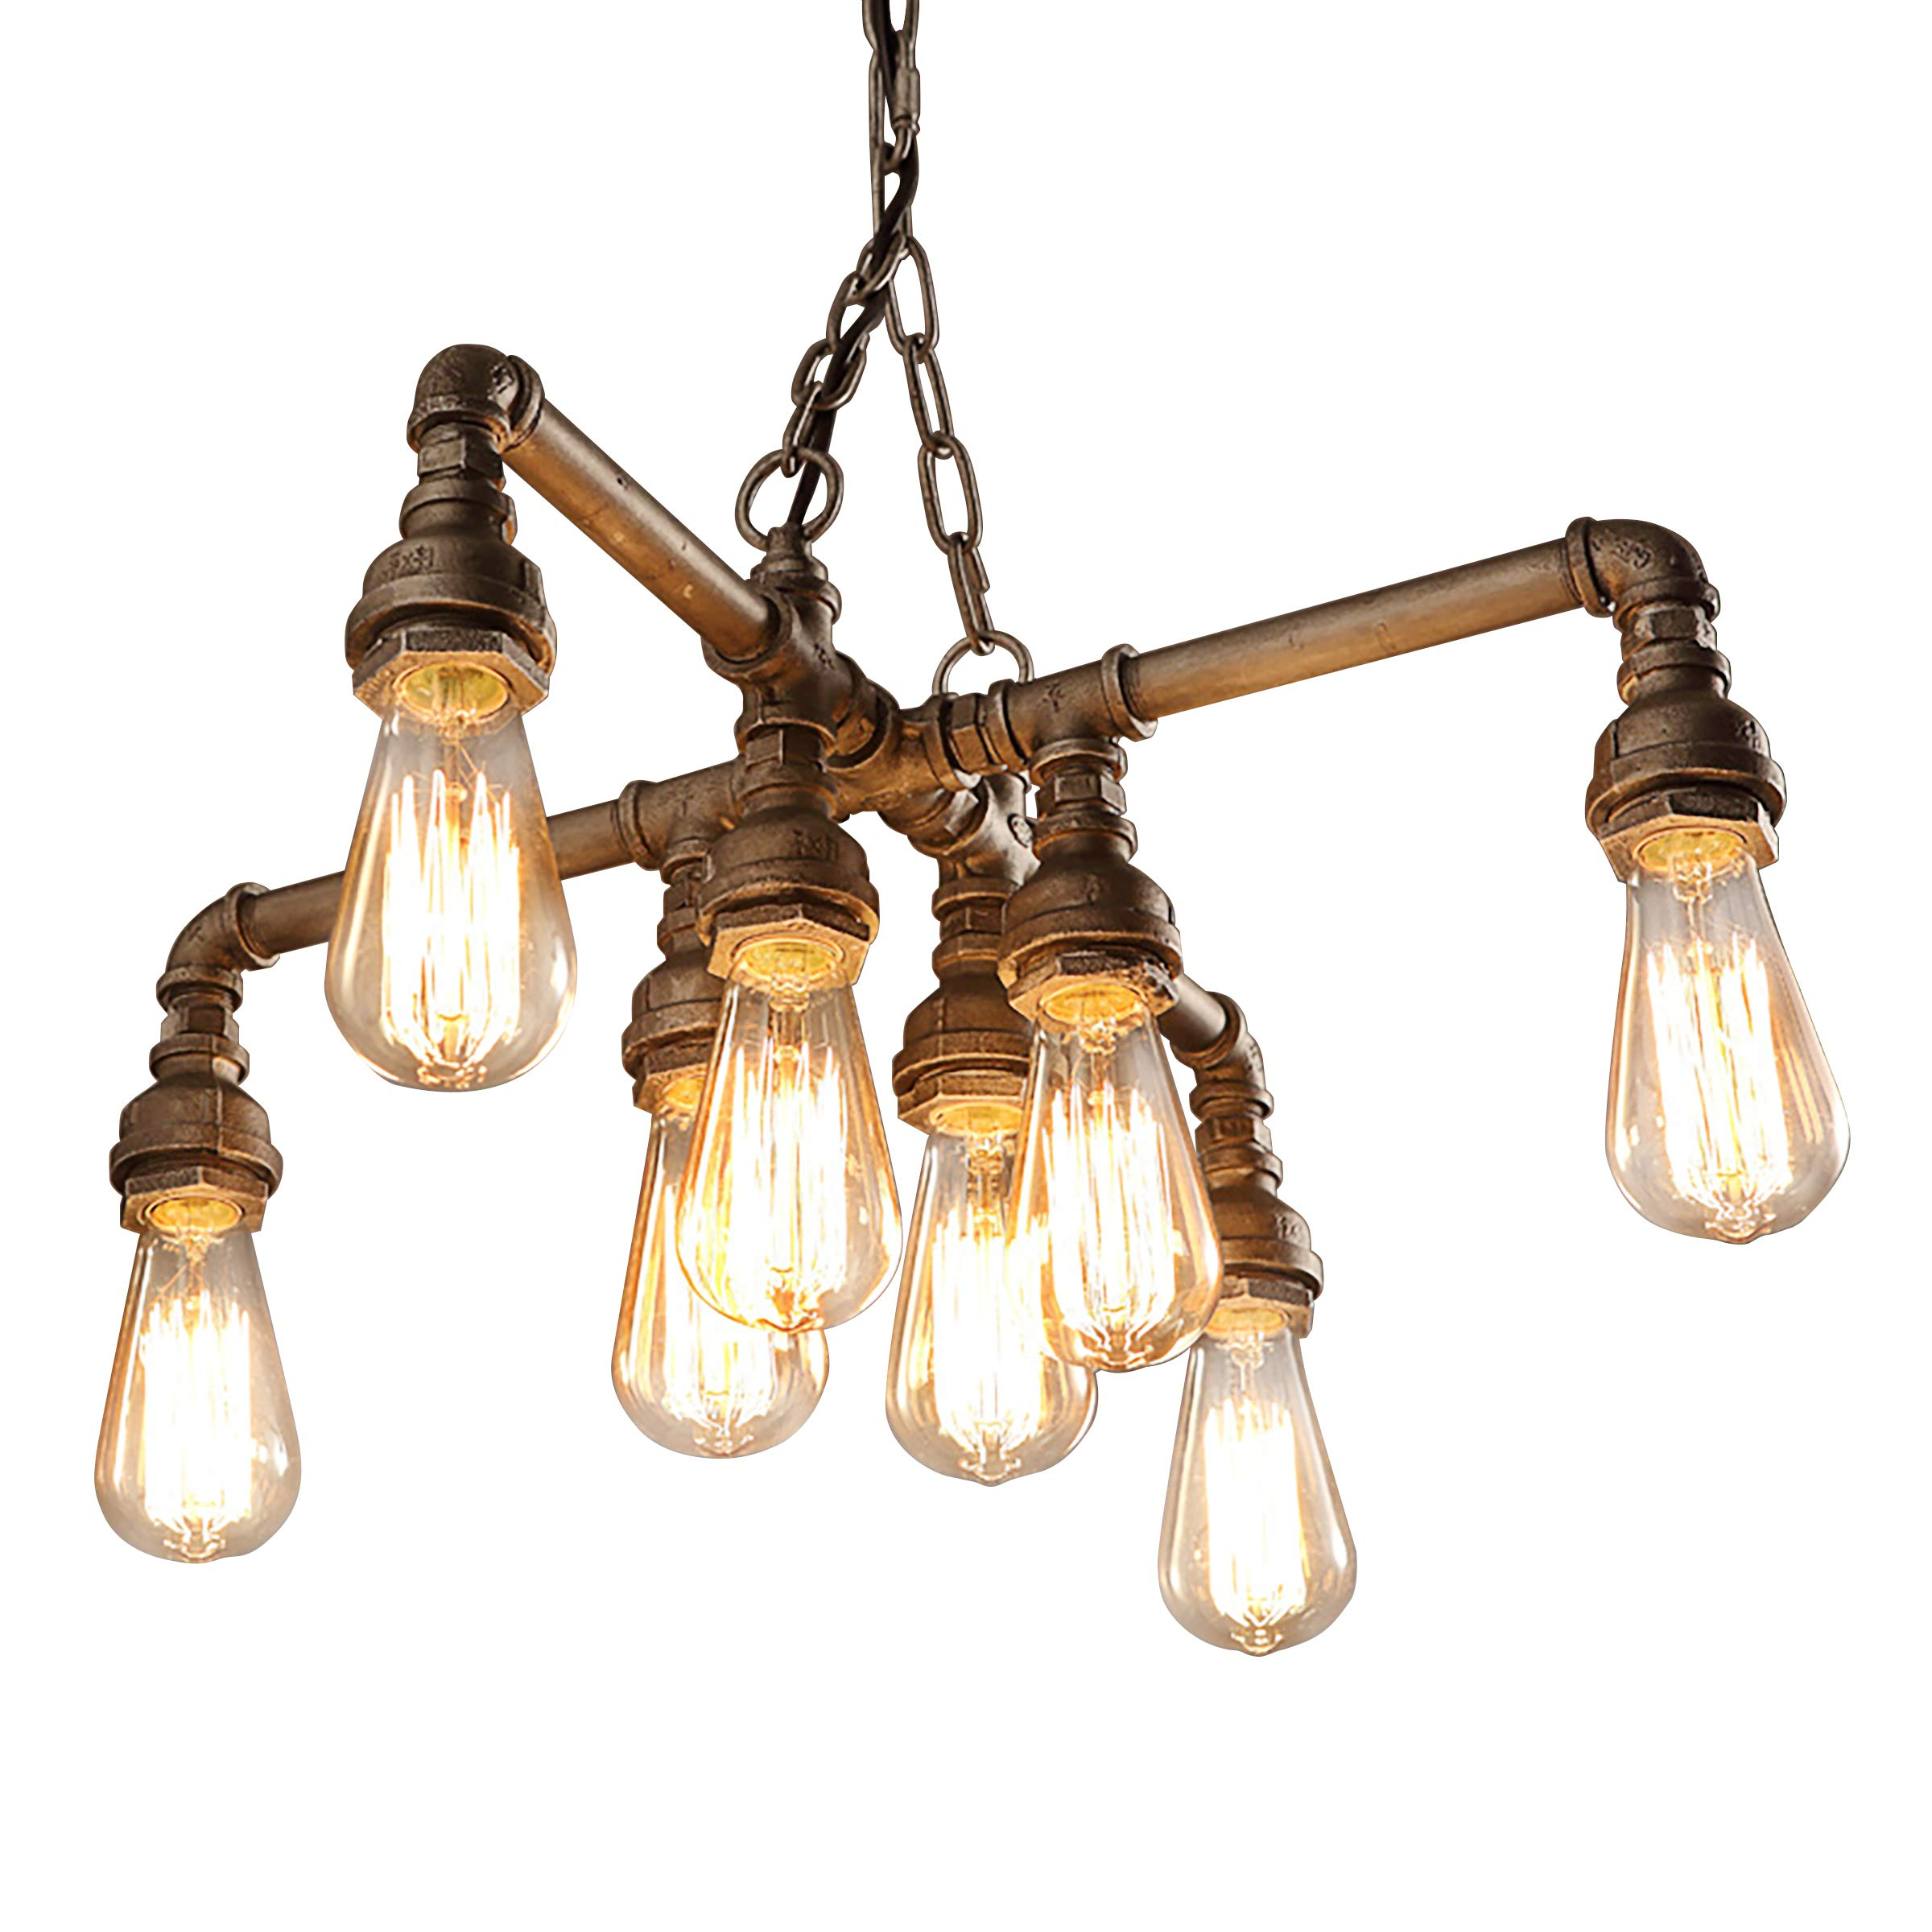 EdiMoM-Light Copper Industrial Pipe Chandeliers with 8 Lights, Max 480W Metal Fixture